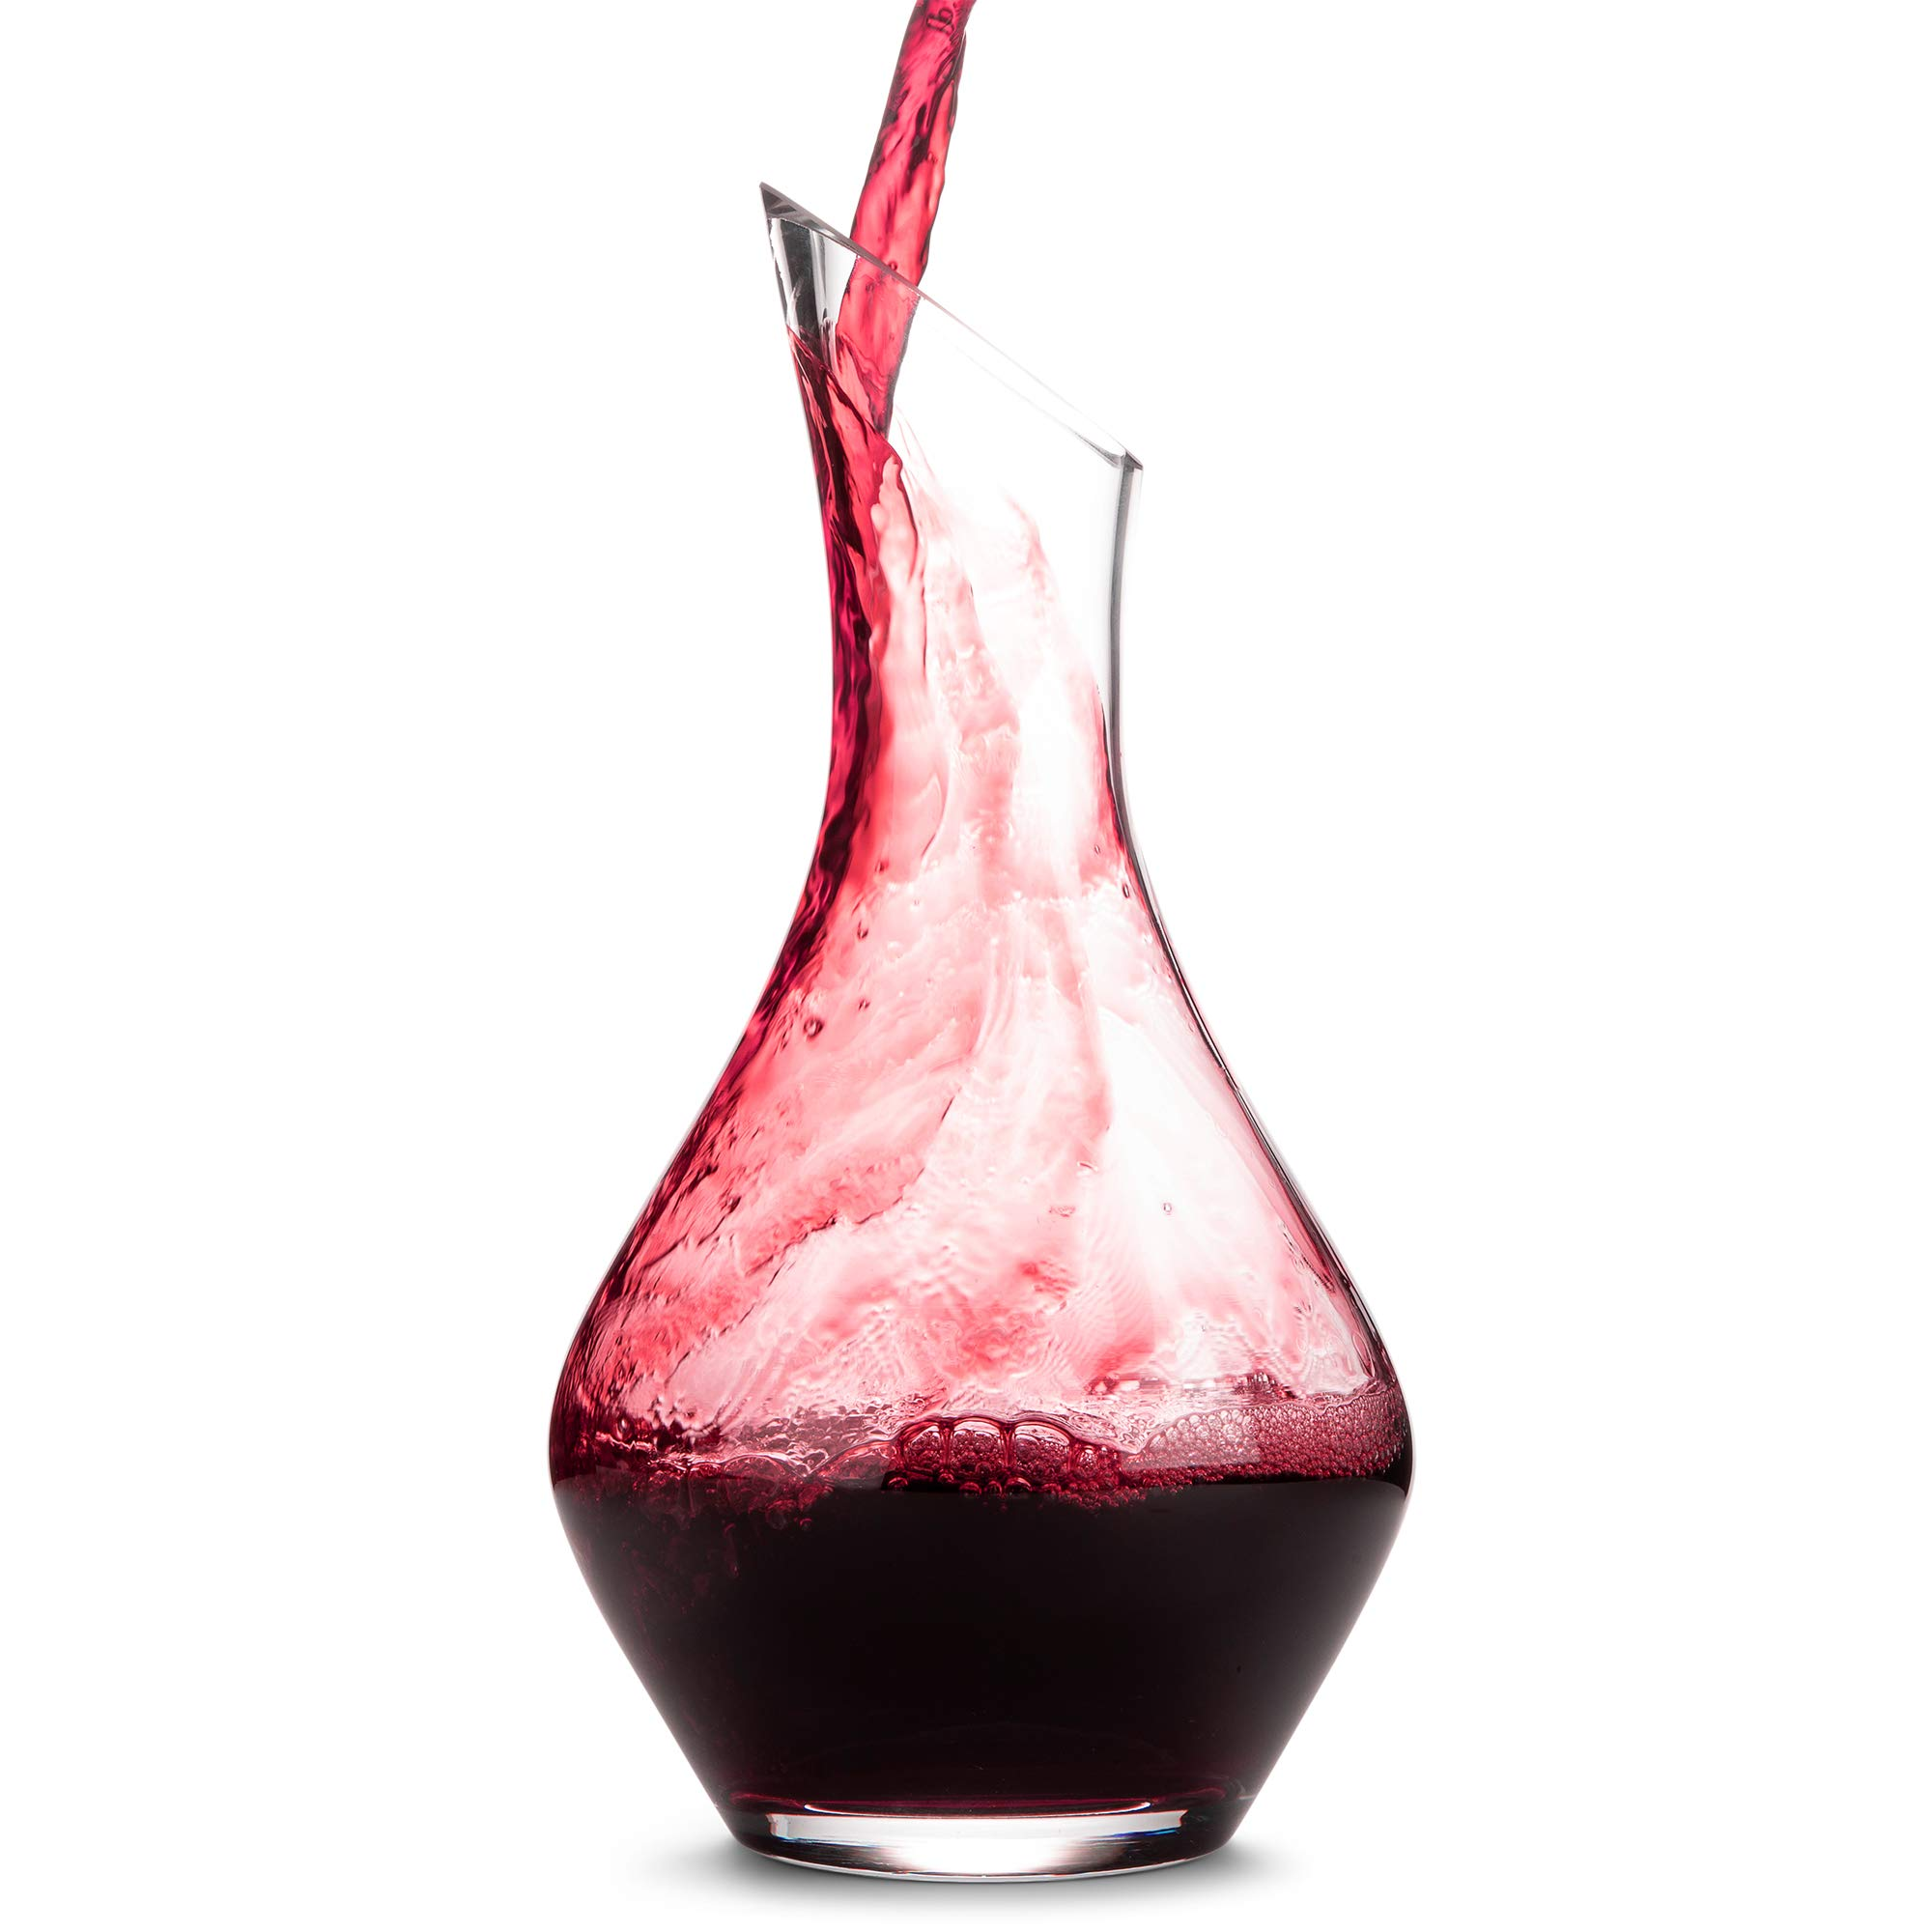 DIONARI Moderno Red Wine Decanter: 100% Lead-Free, Hand-Crafted Glass Decanter for Red Wine Aeration, Premium, Luxurious Aerator Carafe Gift Set for Wine Lovers, Elegant Wine and Drinking Accessories by DIONARI